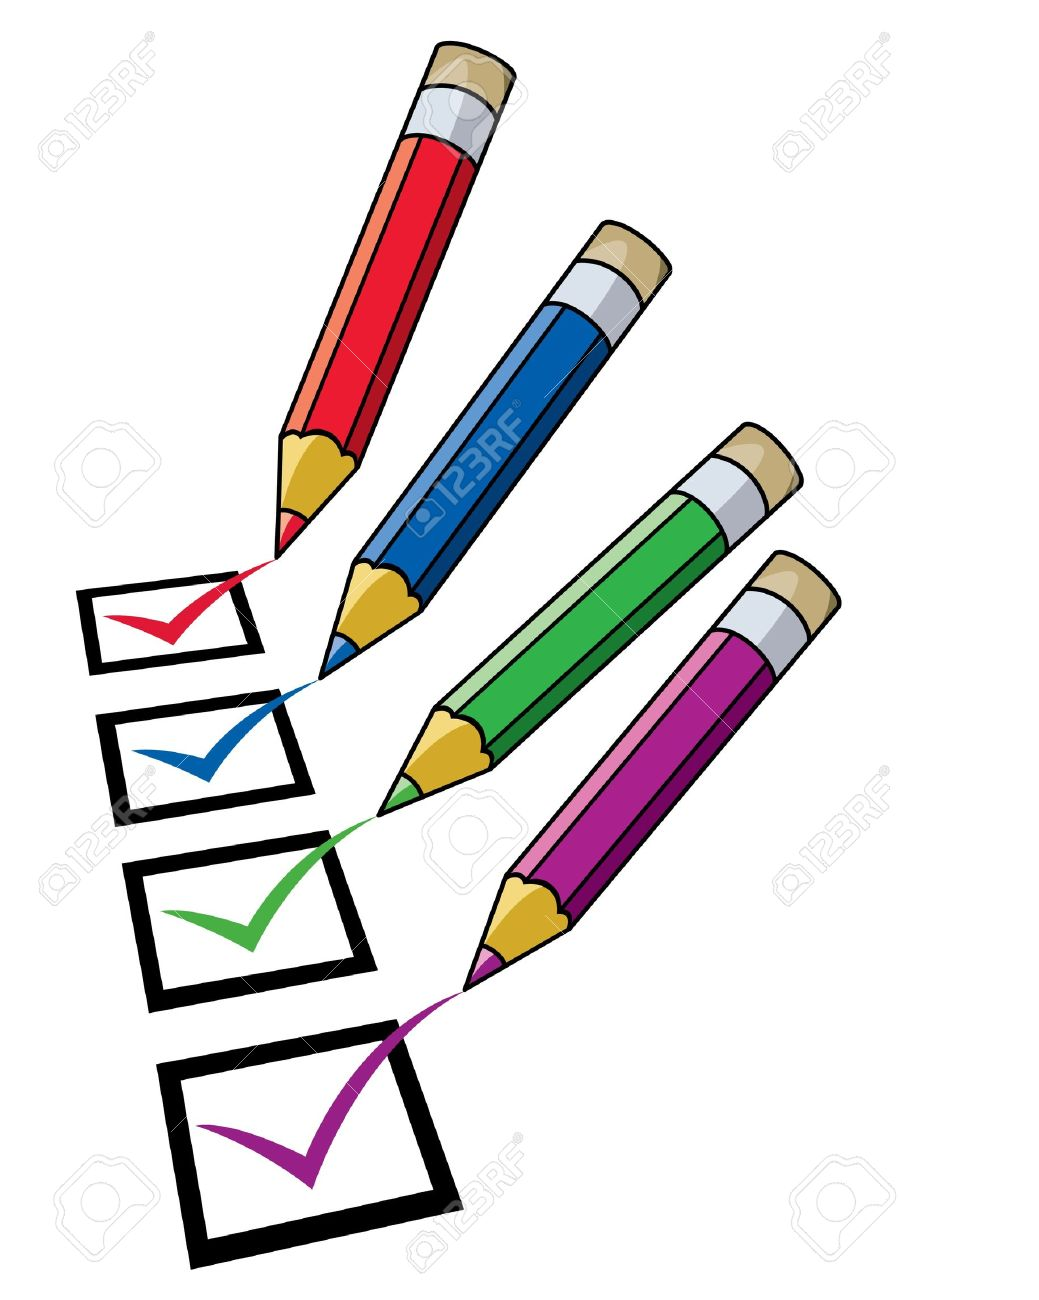 pencils and checklist royalty free cliparts, vectors, and stock